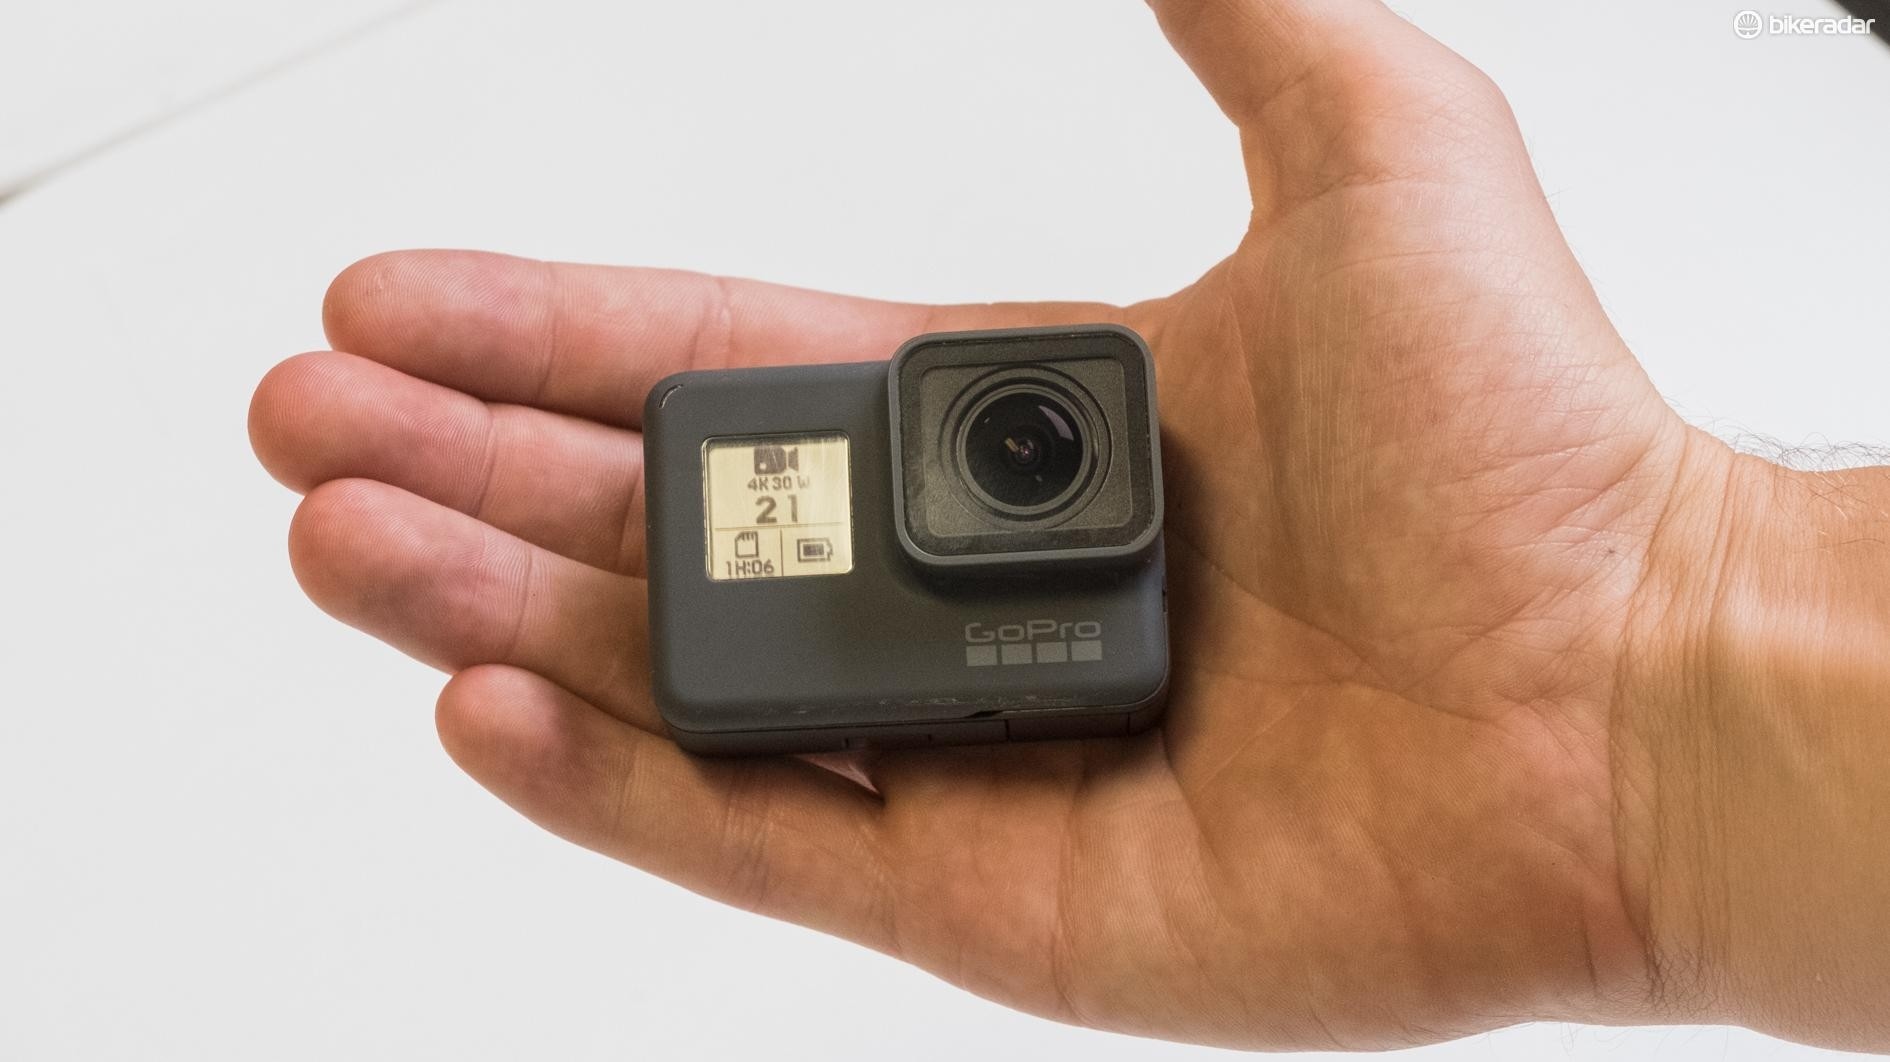 gopro-hero-6-review-2-1506699545624-ms6s86y4qdpp-b3b4297